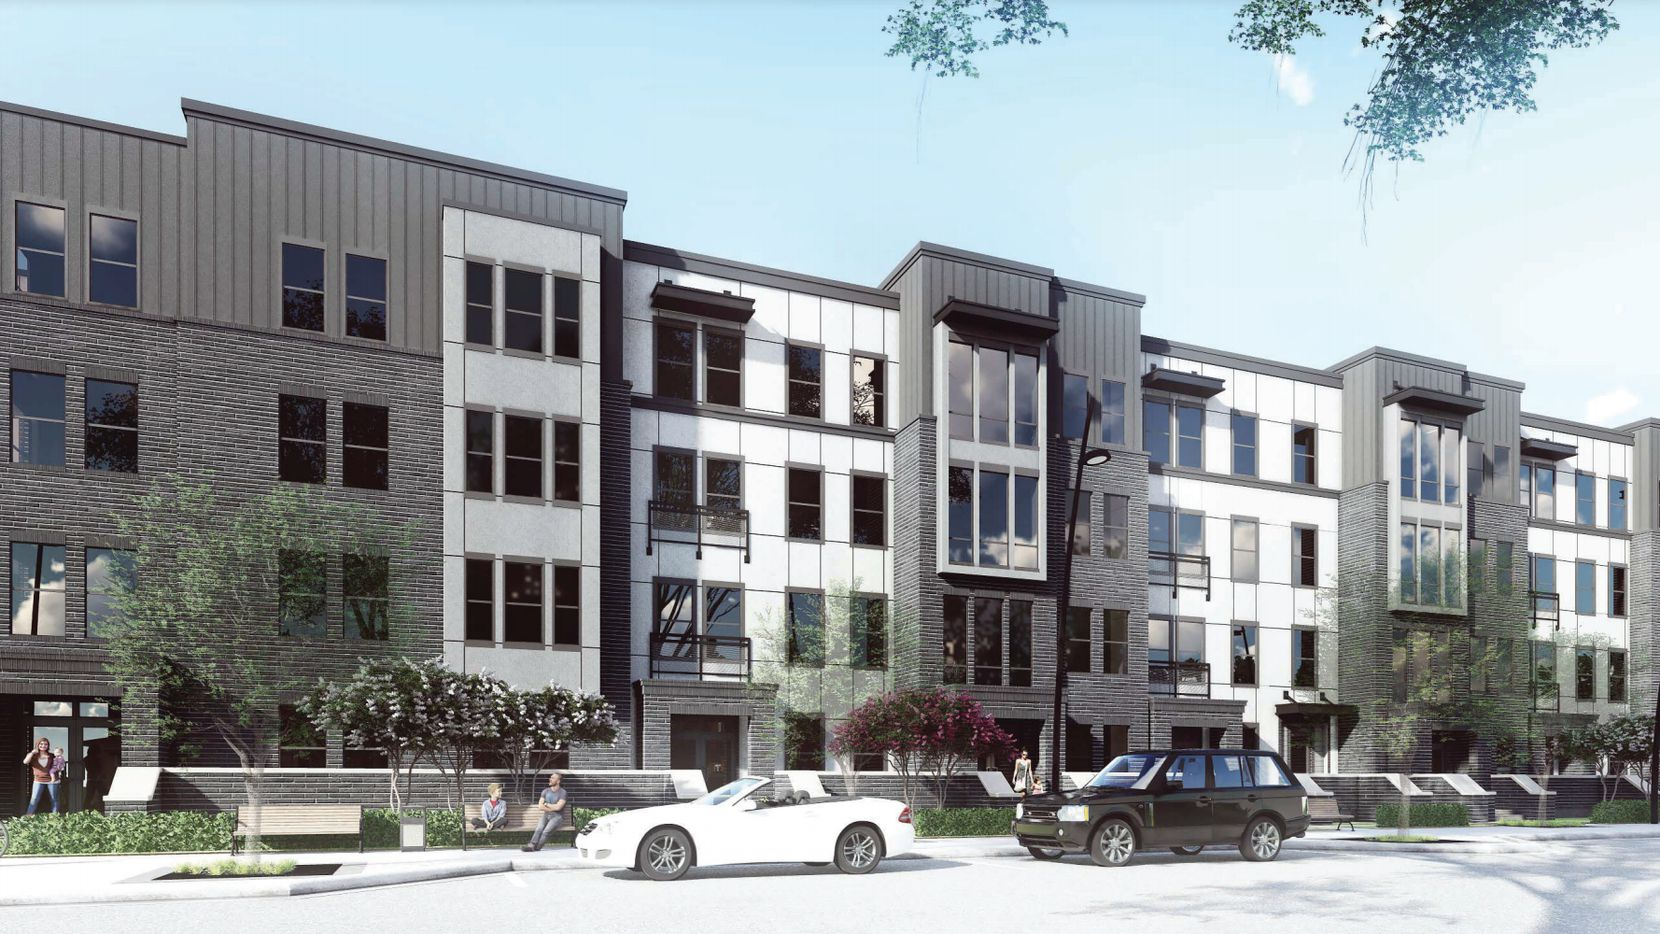 The rental community is planned on Spring Valley Road west of U.S. Highway 75.